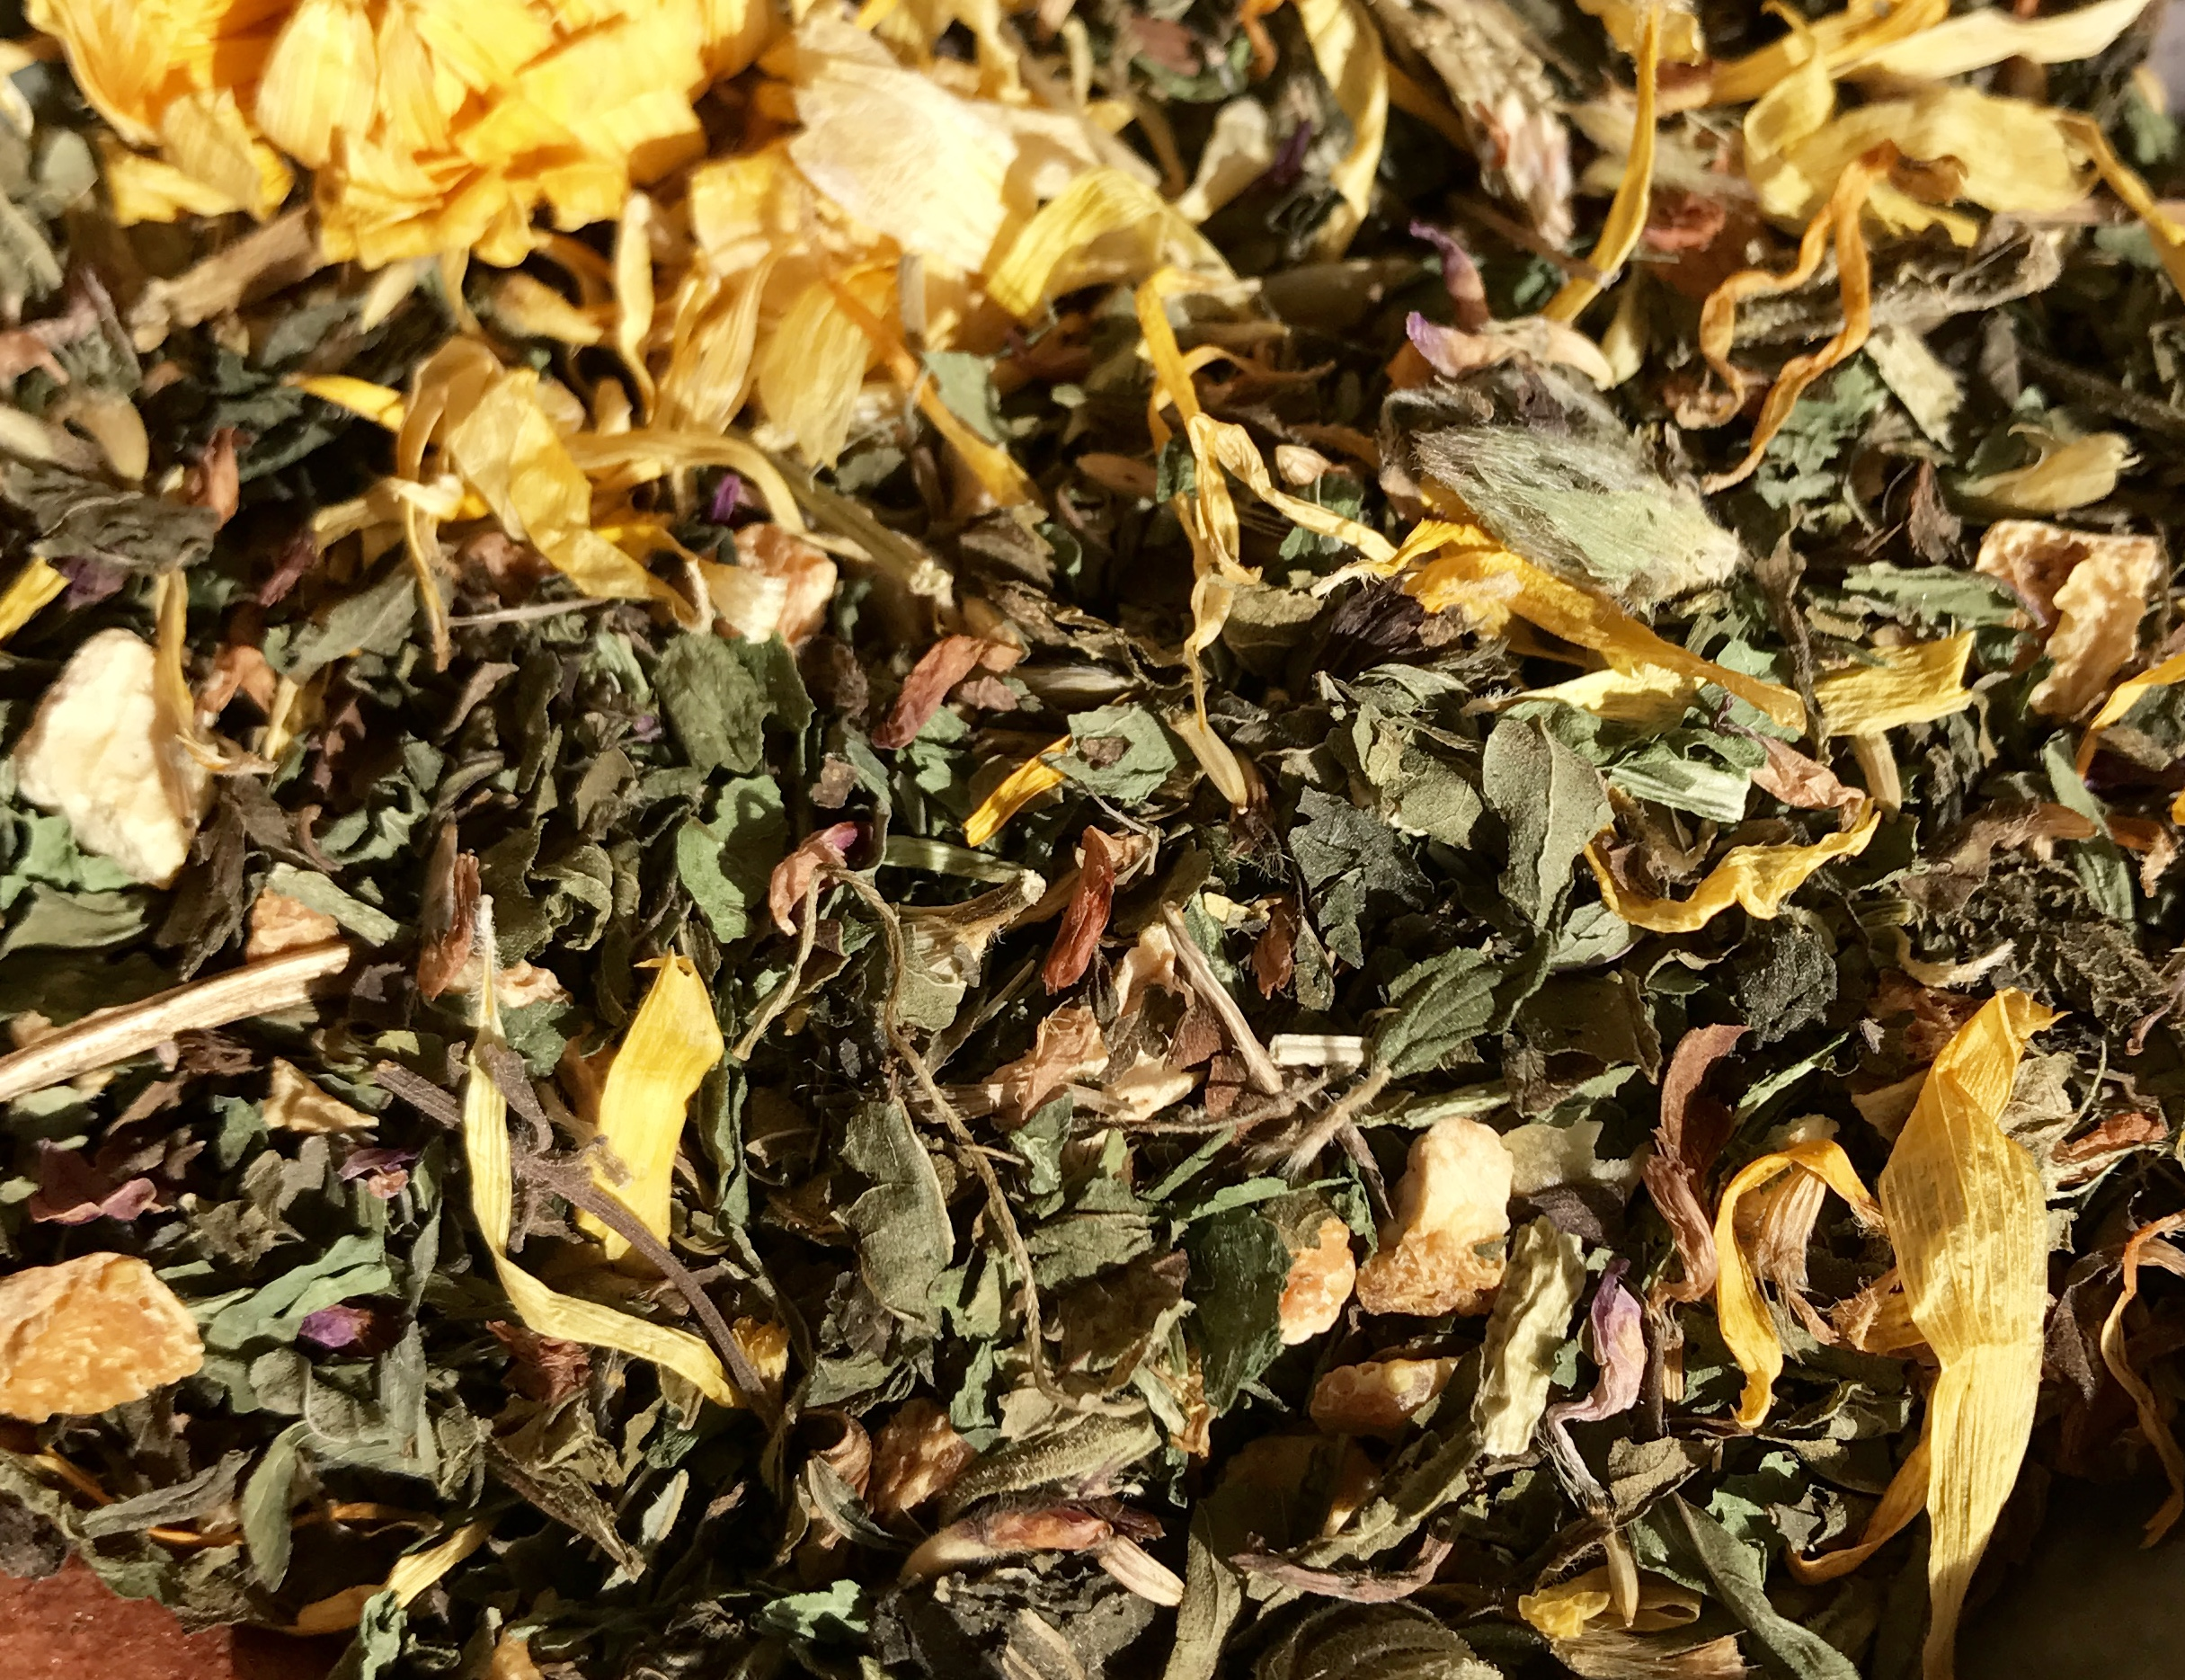 Herbal teas can be delicious, medicinal and absolutely beautiful at the same time!